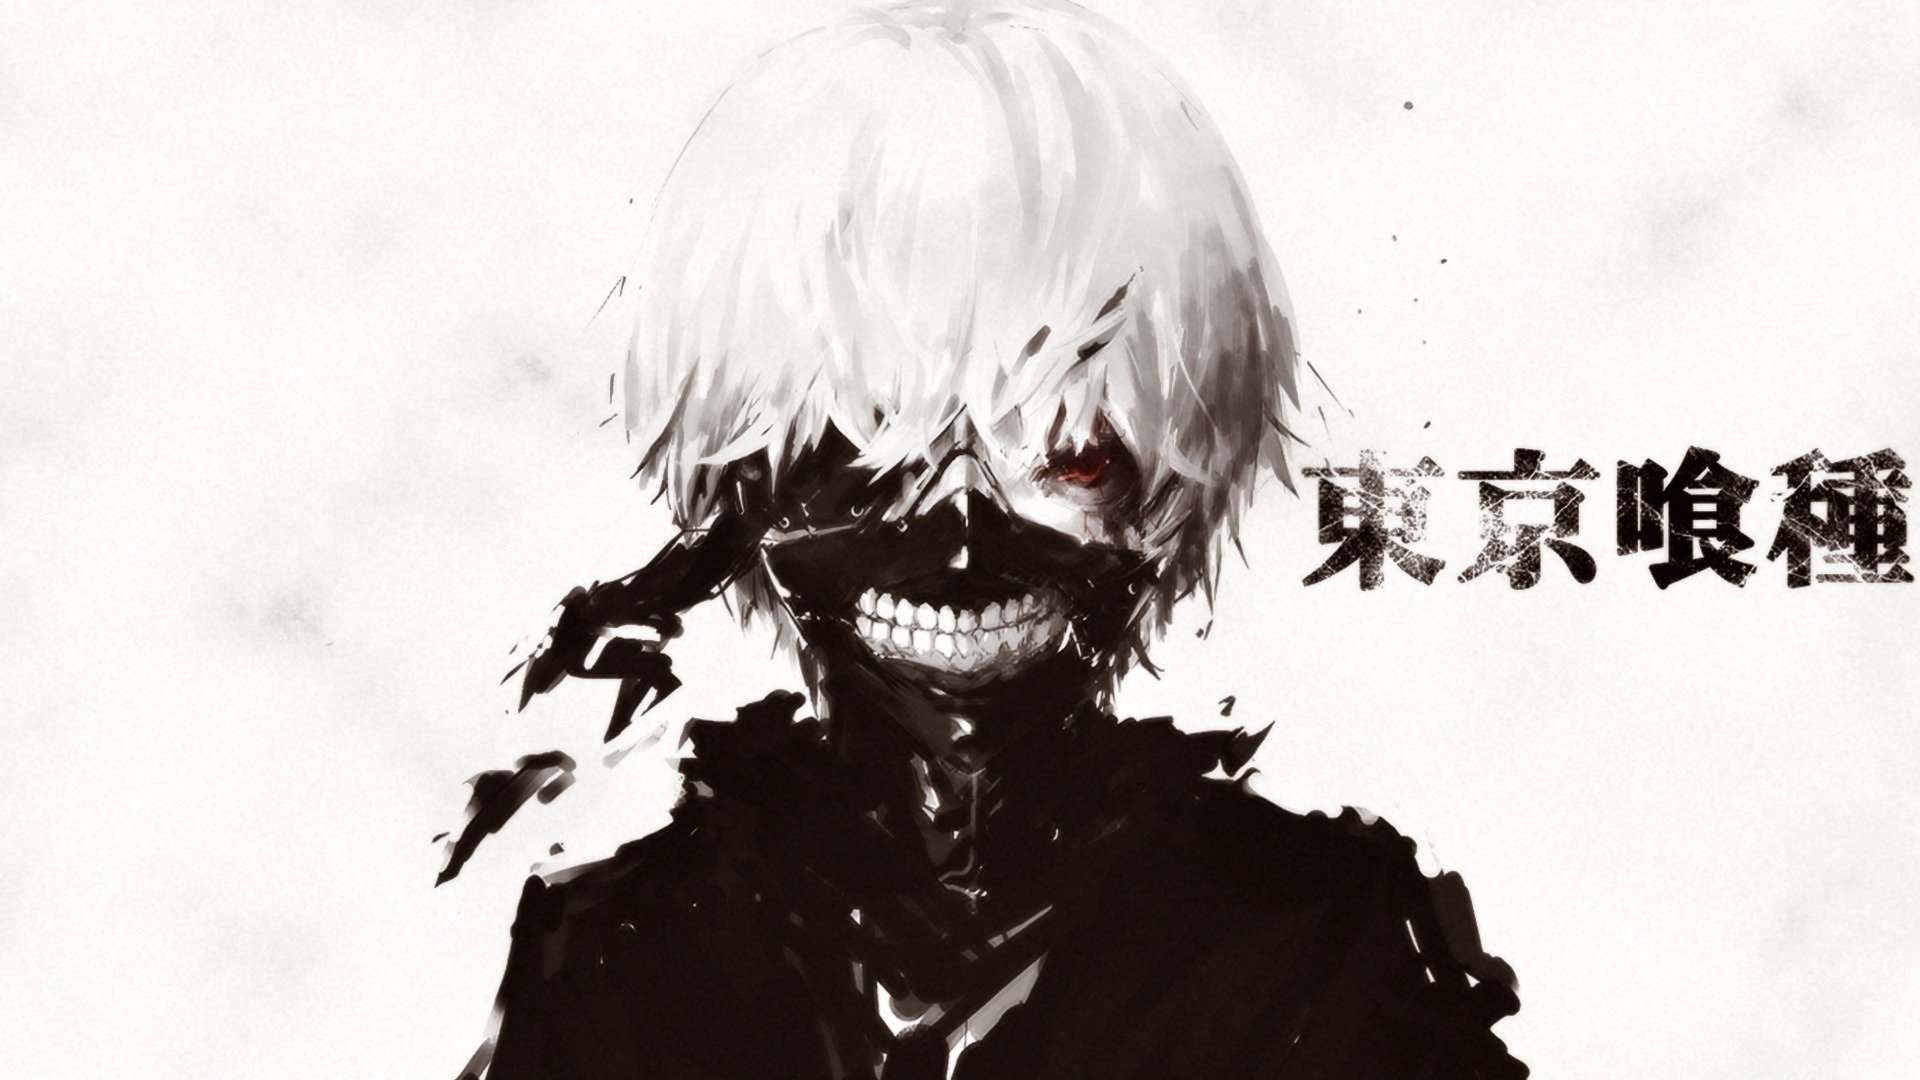 Dowload Walpaper Anime Tokyo Ghoul 2019: Tokyo Ghoul Wallpapers High Quality